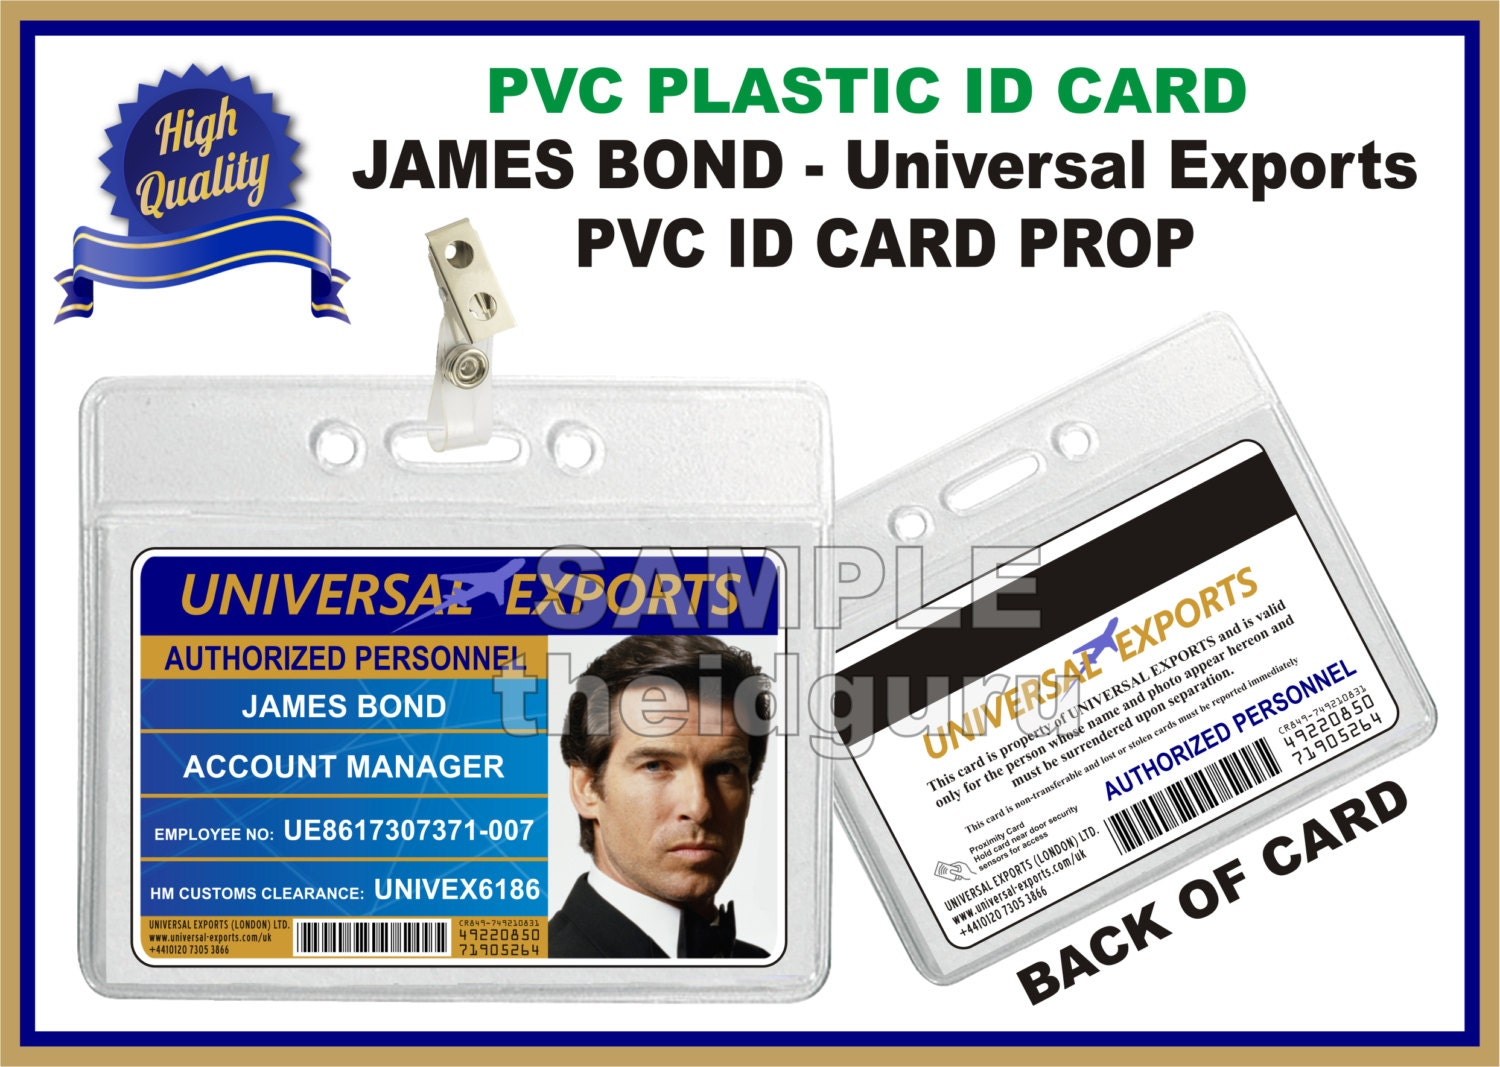 james bond universal exports id badge card printed on both sides premium quality pvc plastic id card usa made - Plastic Id Cards